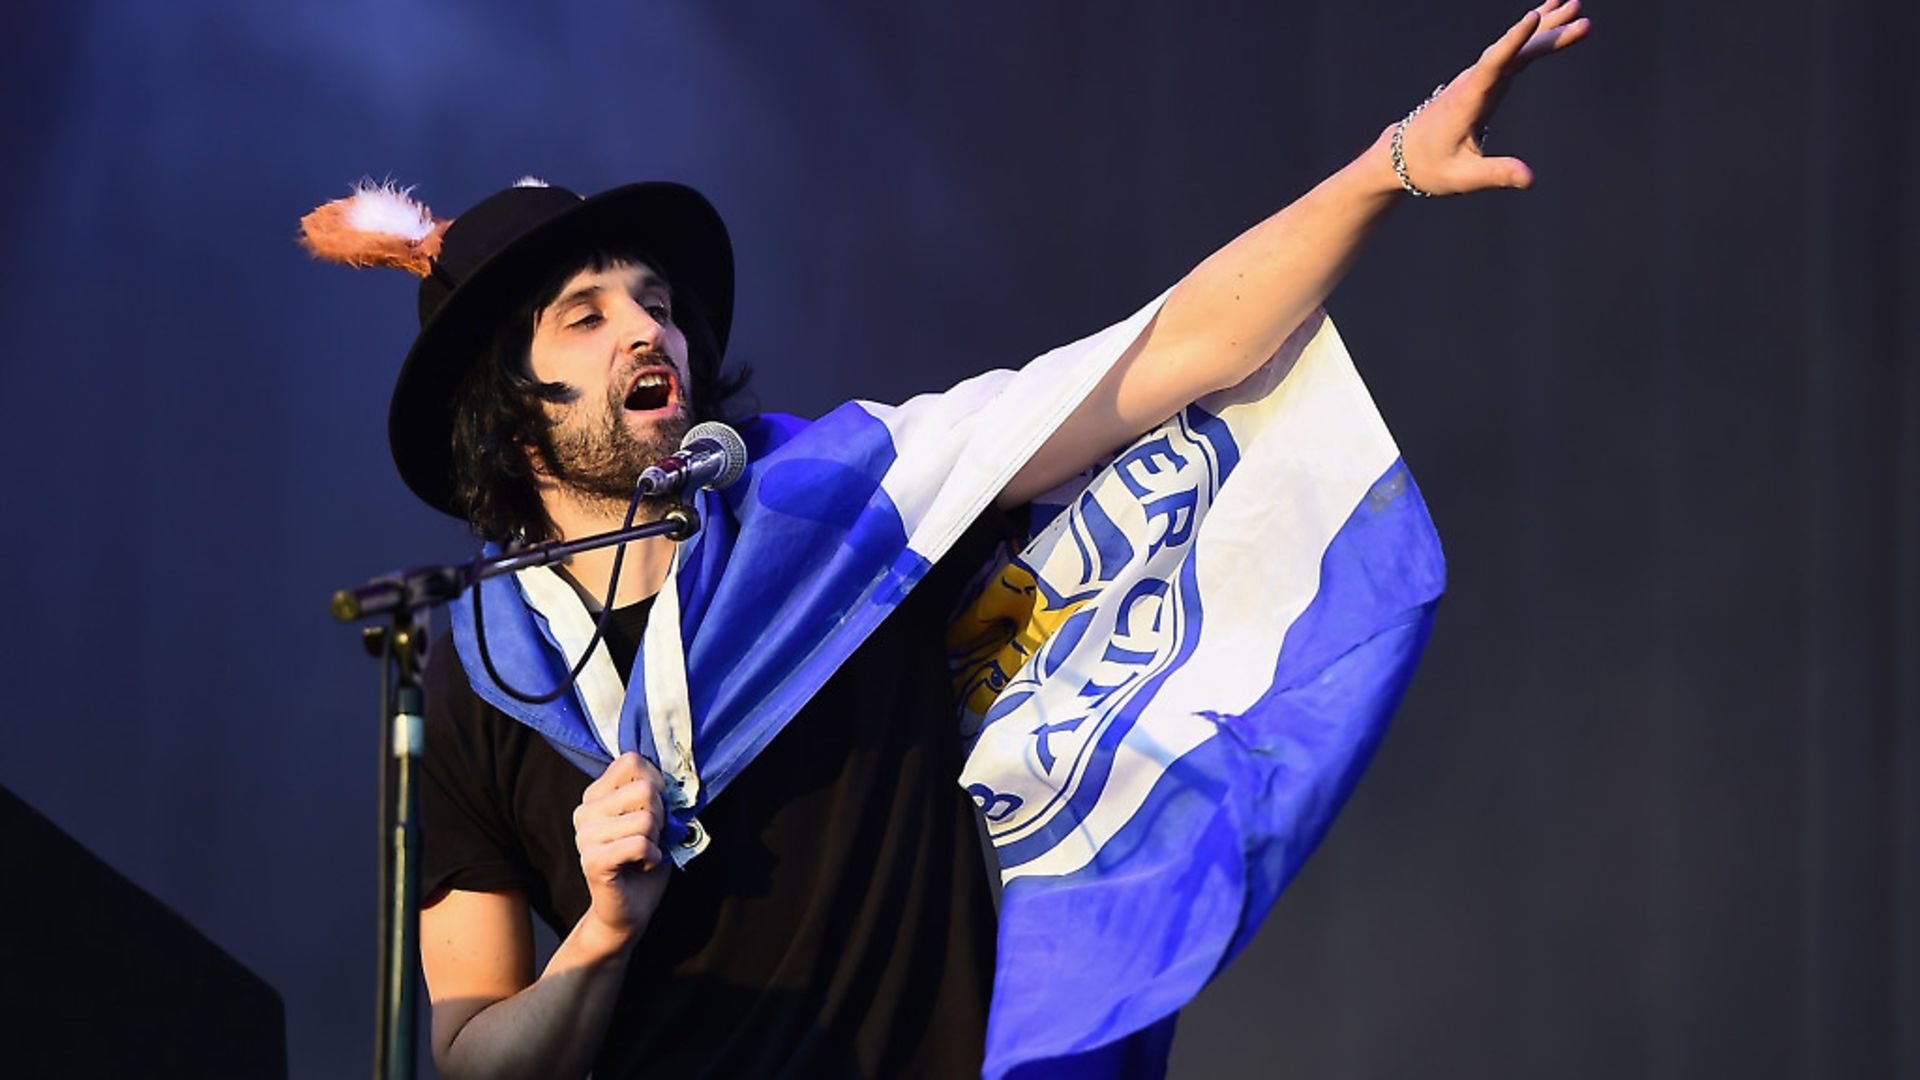 Sergio Pizzorno of Kasabian performs during the Leicester City Barclays Premier League winners bus parade on May 16, 2016 in Leicester. Photo by Laurence Griffiths/Getty Images - Credit: Getty Images